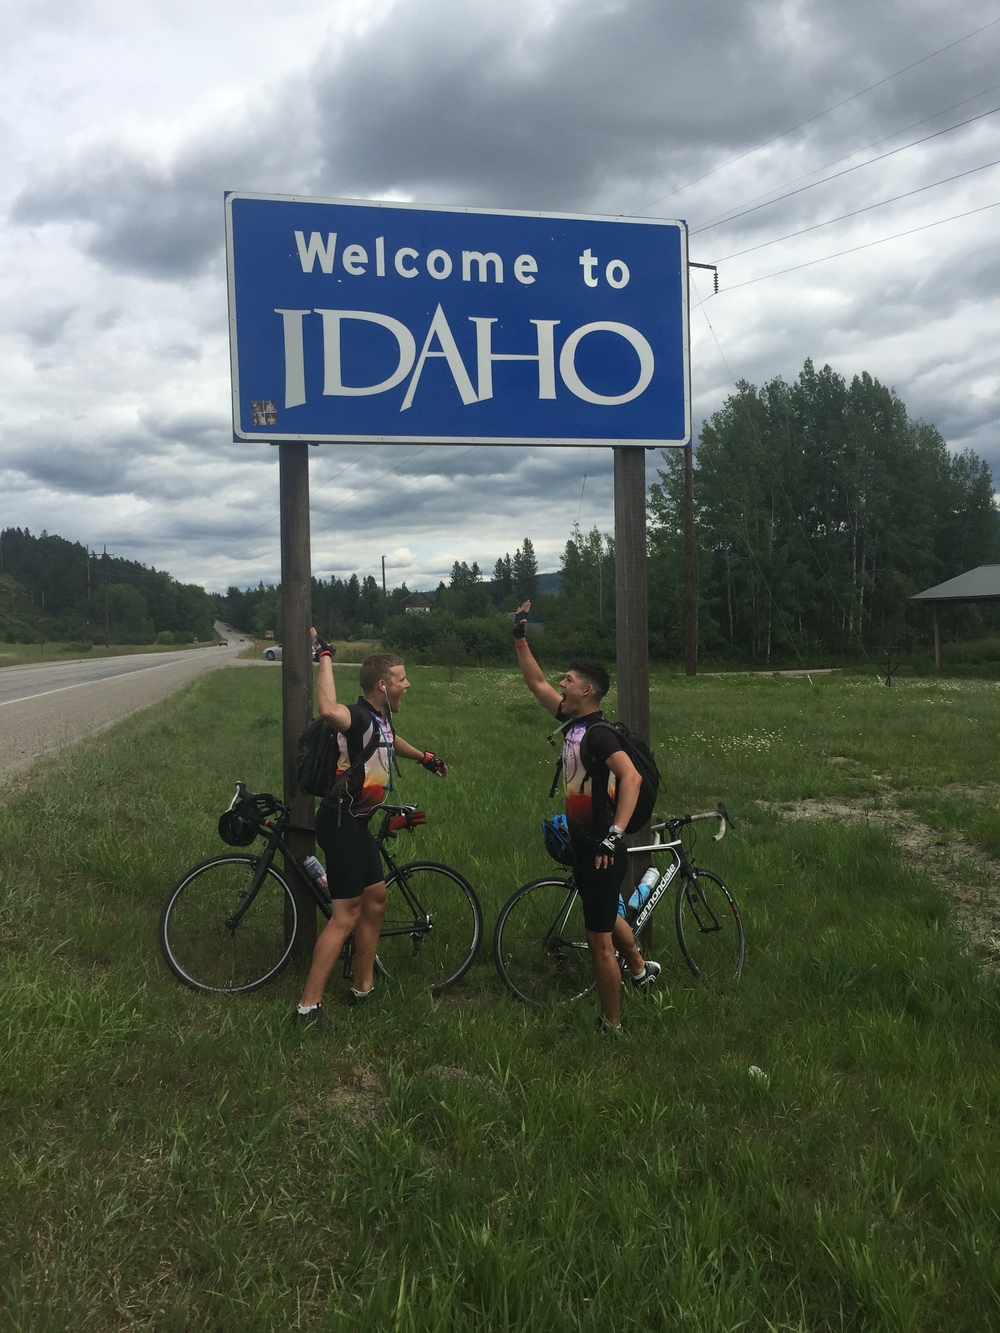 At the border into Idaho